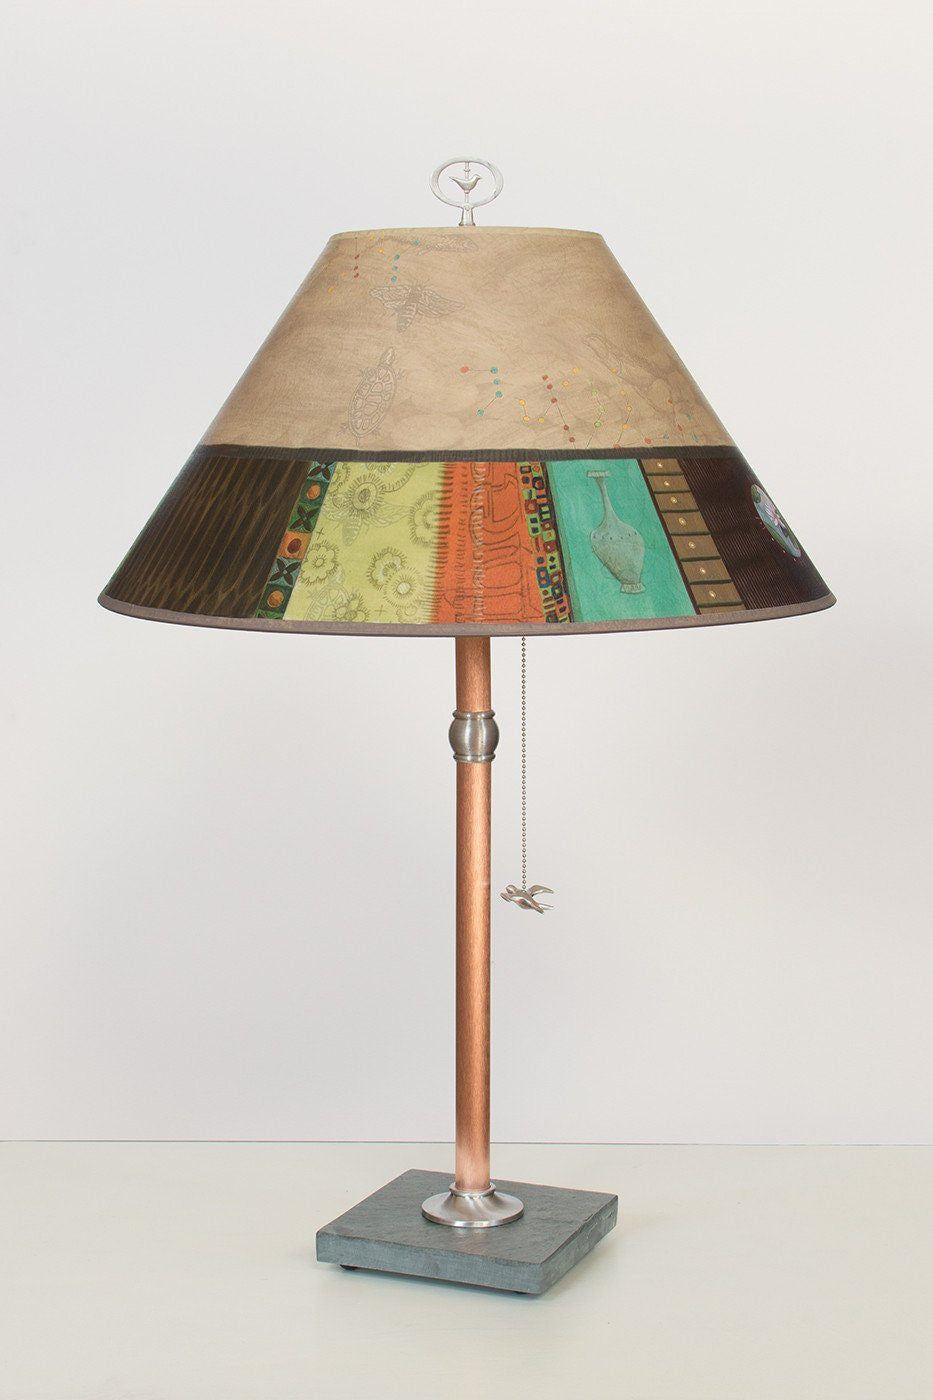 Copper Table Lamp on Vermont Slate with Large Conical Shade in Linen Match